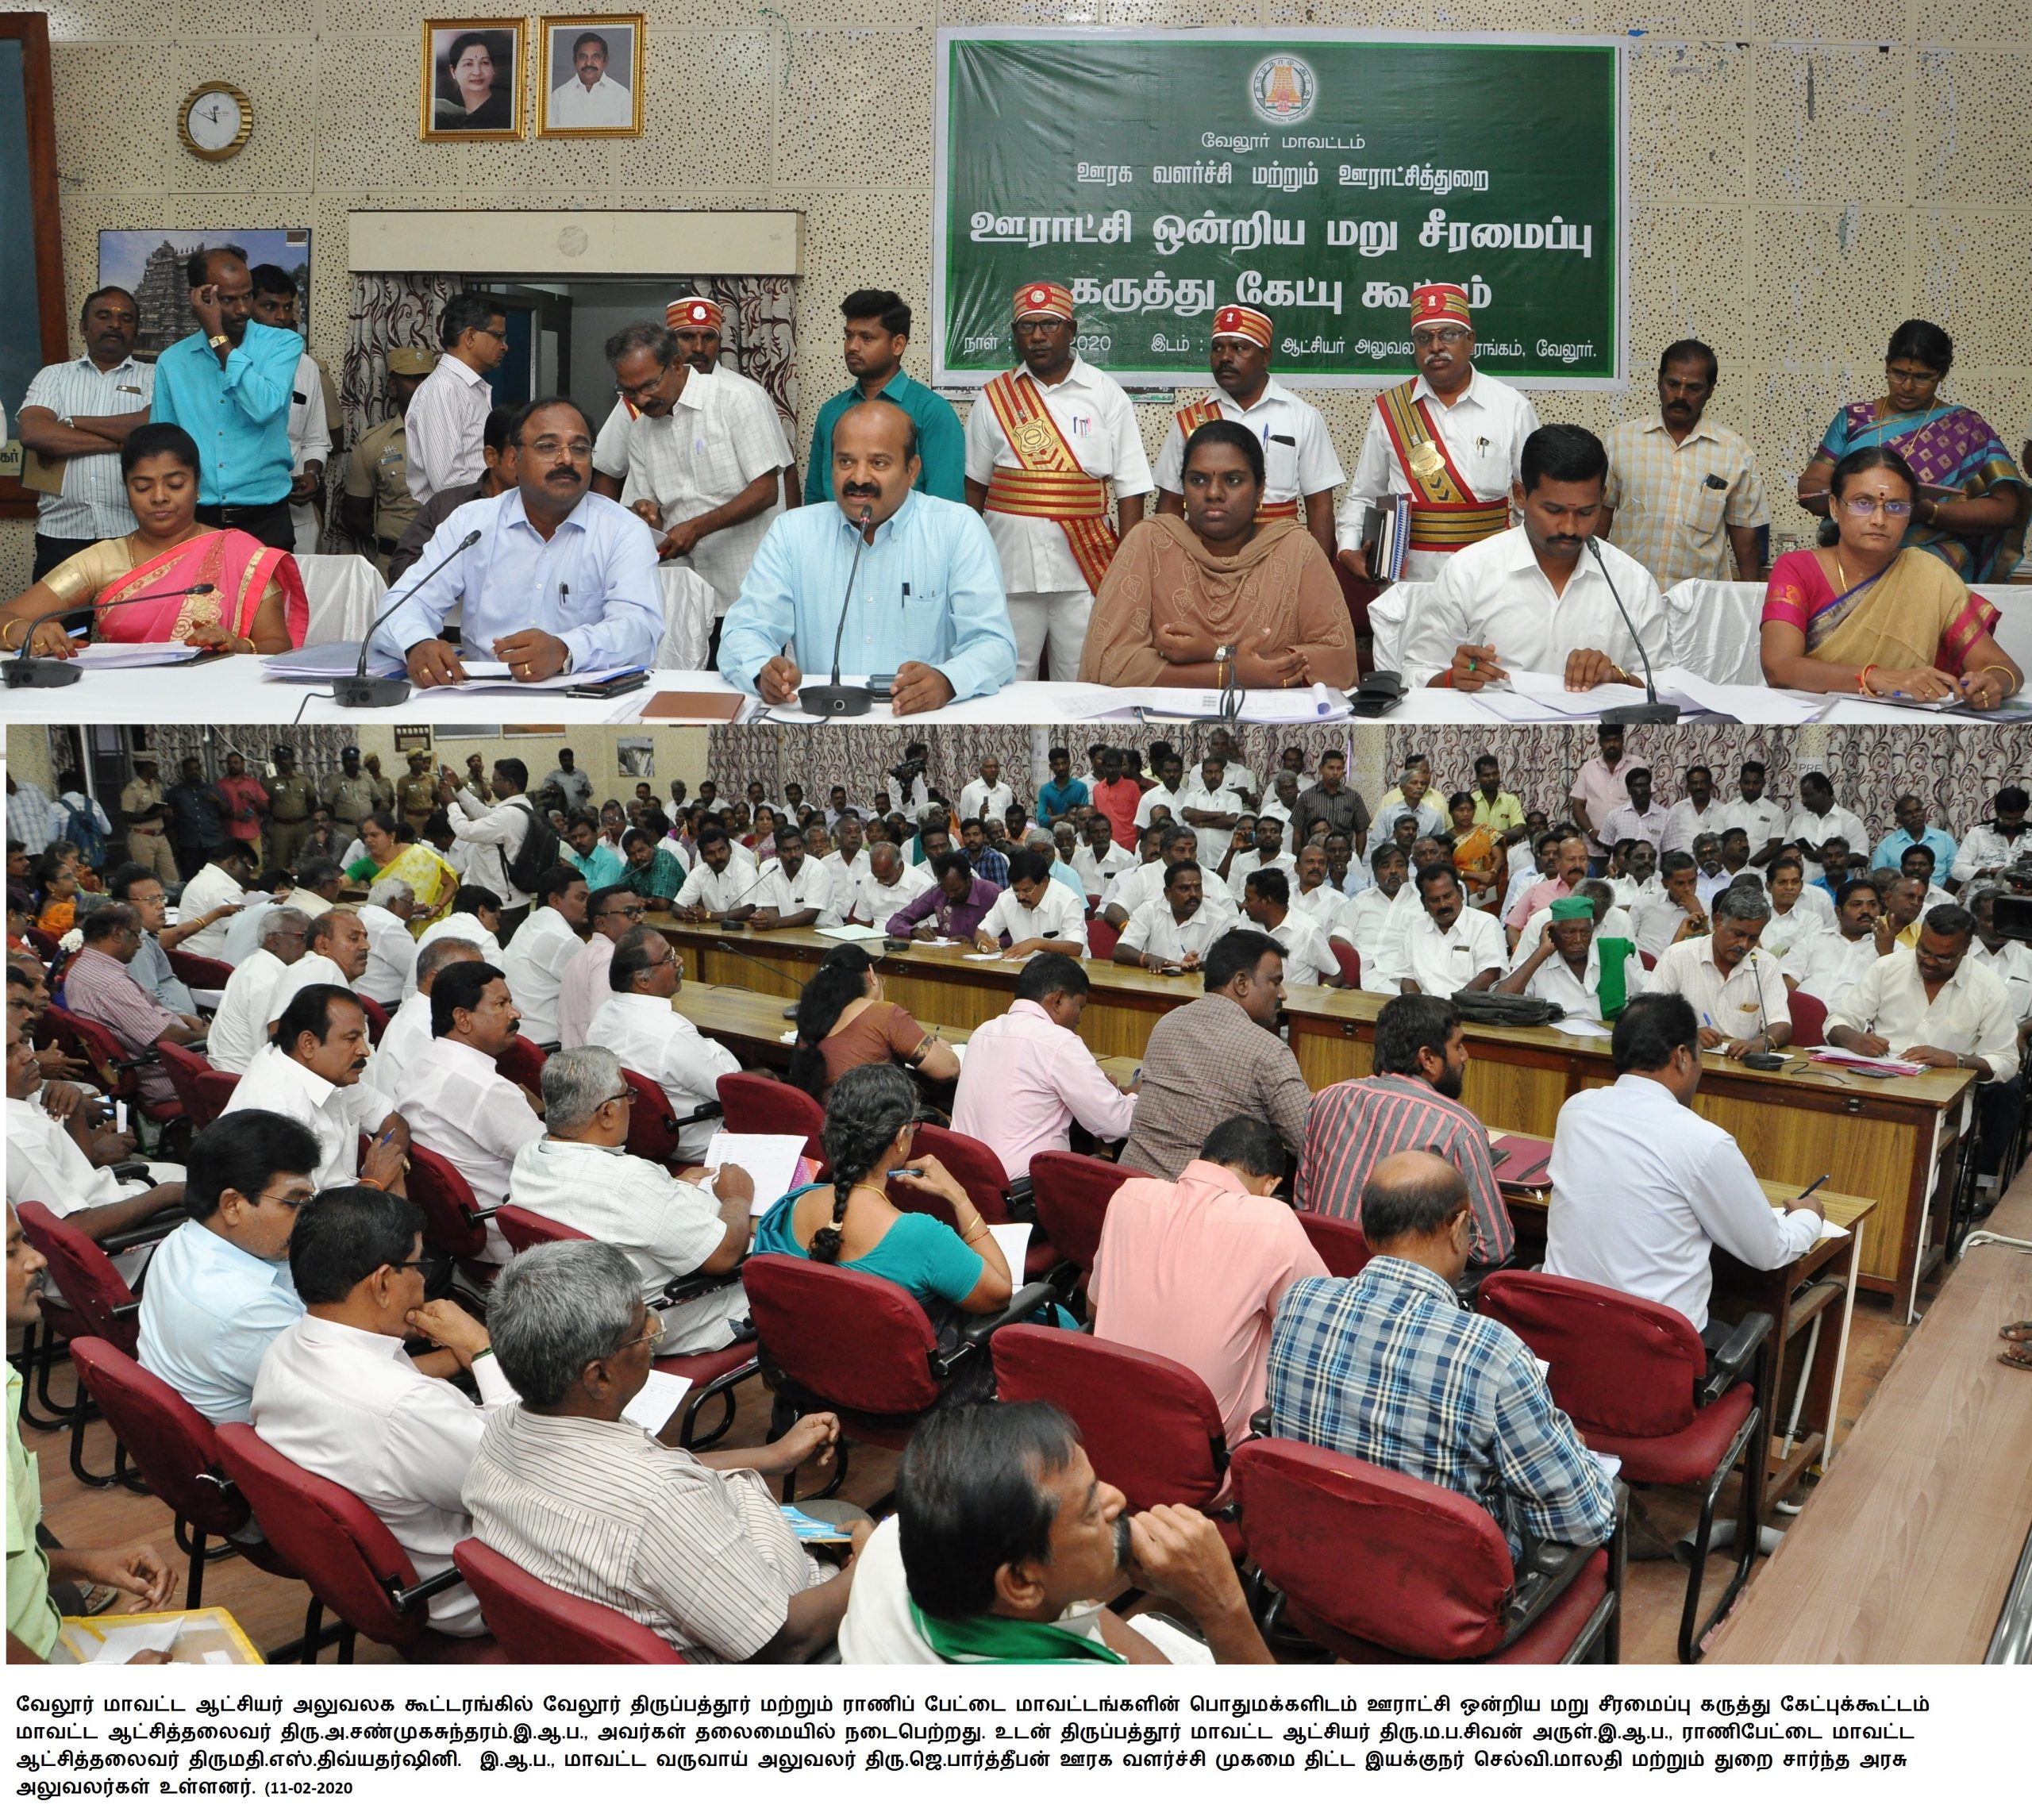 Public opinion meeting for Delimitation of wards